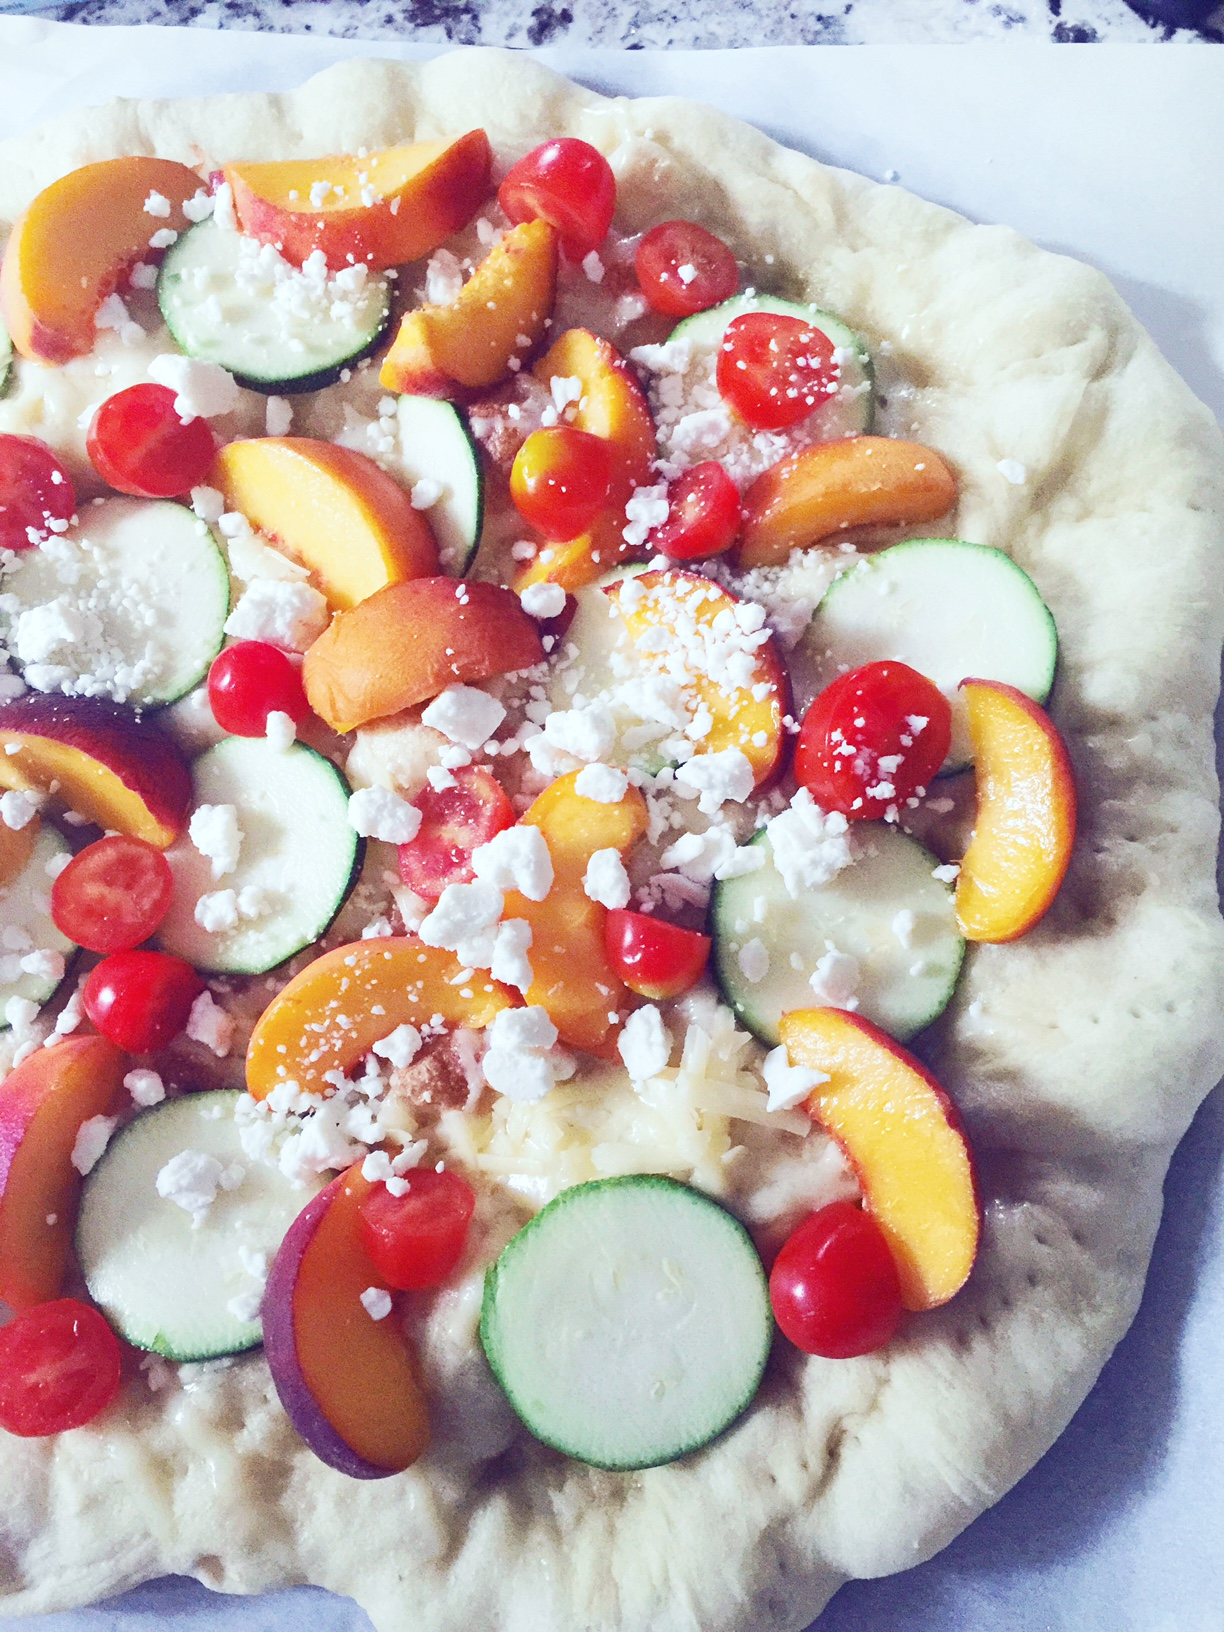 Our peach and zucchini summer pizza.